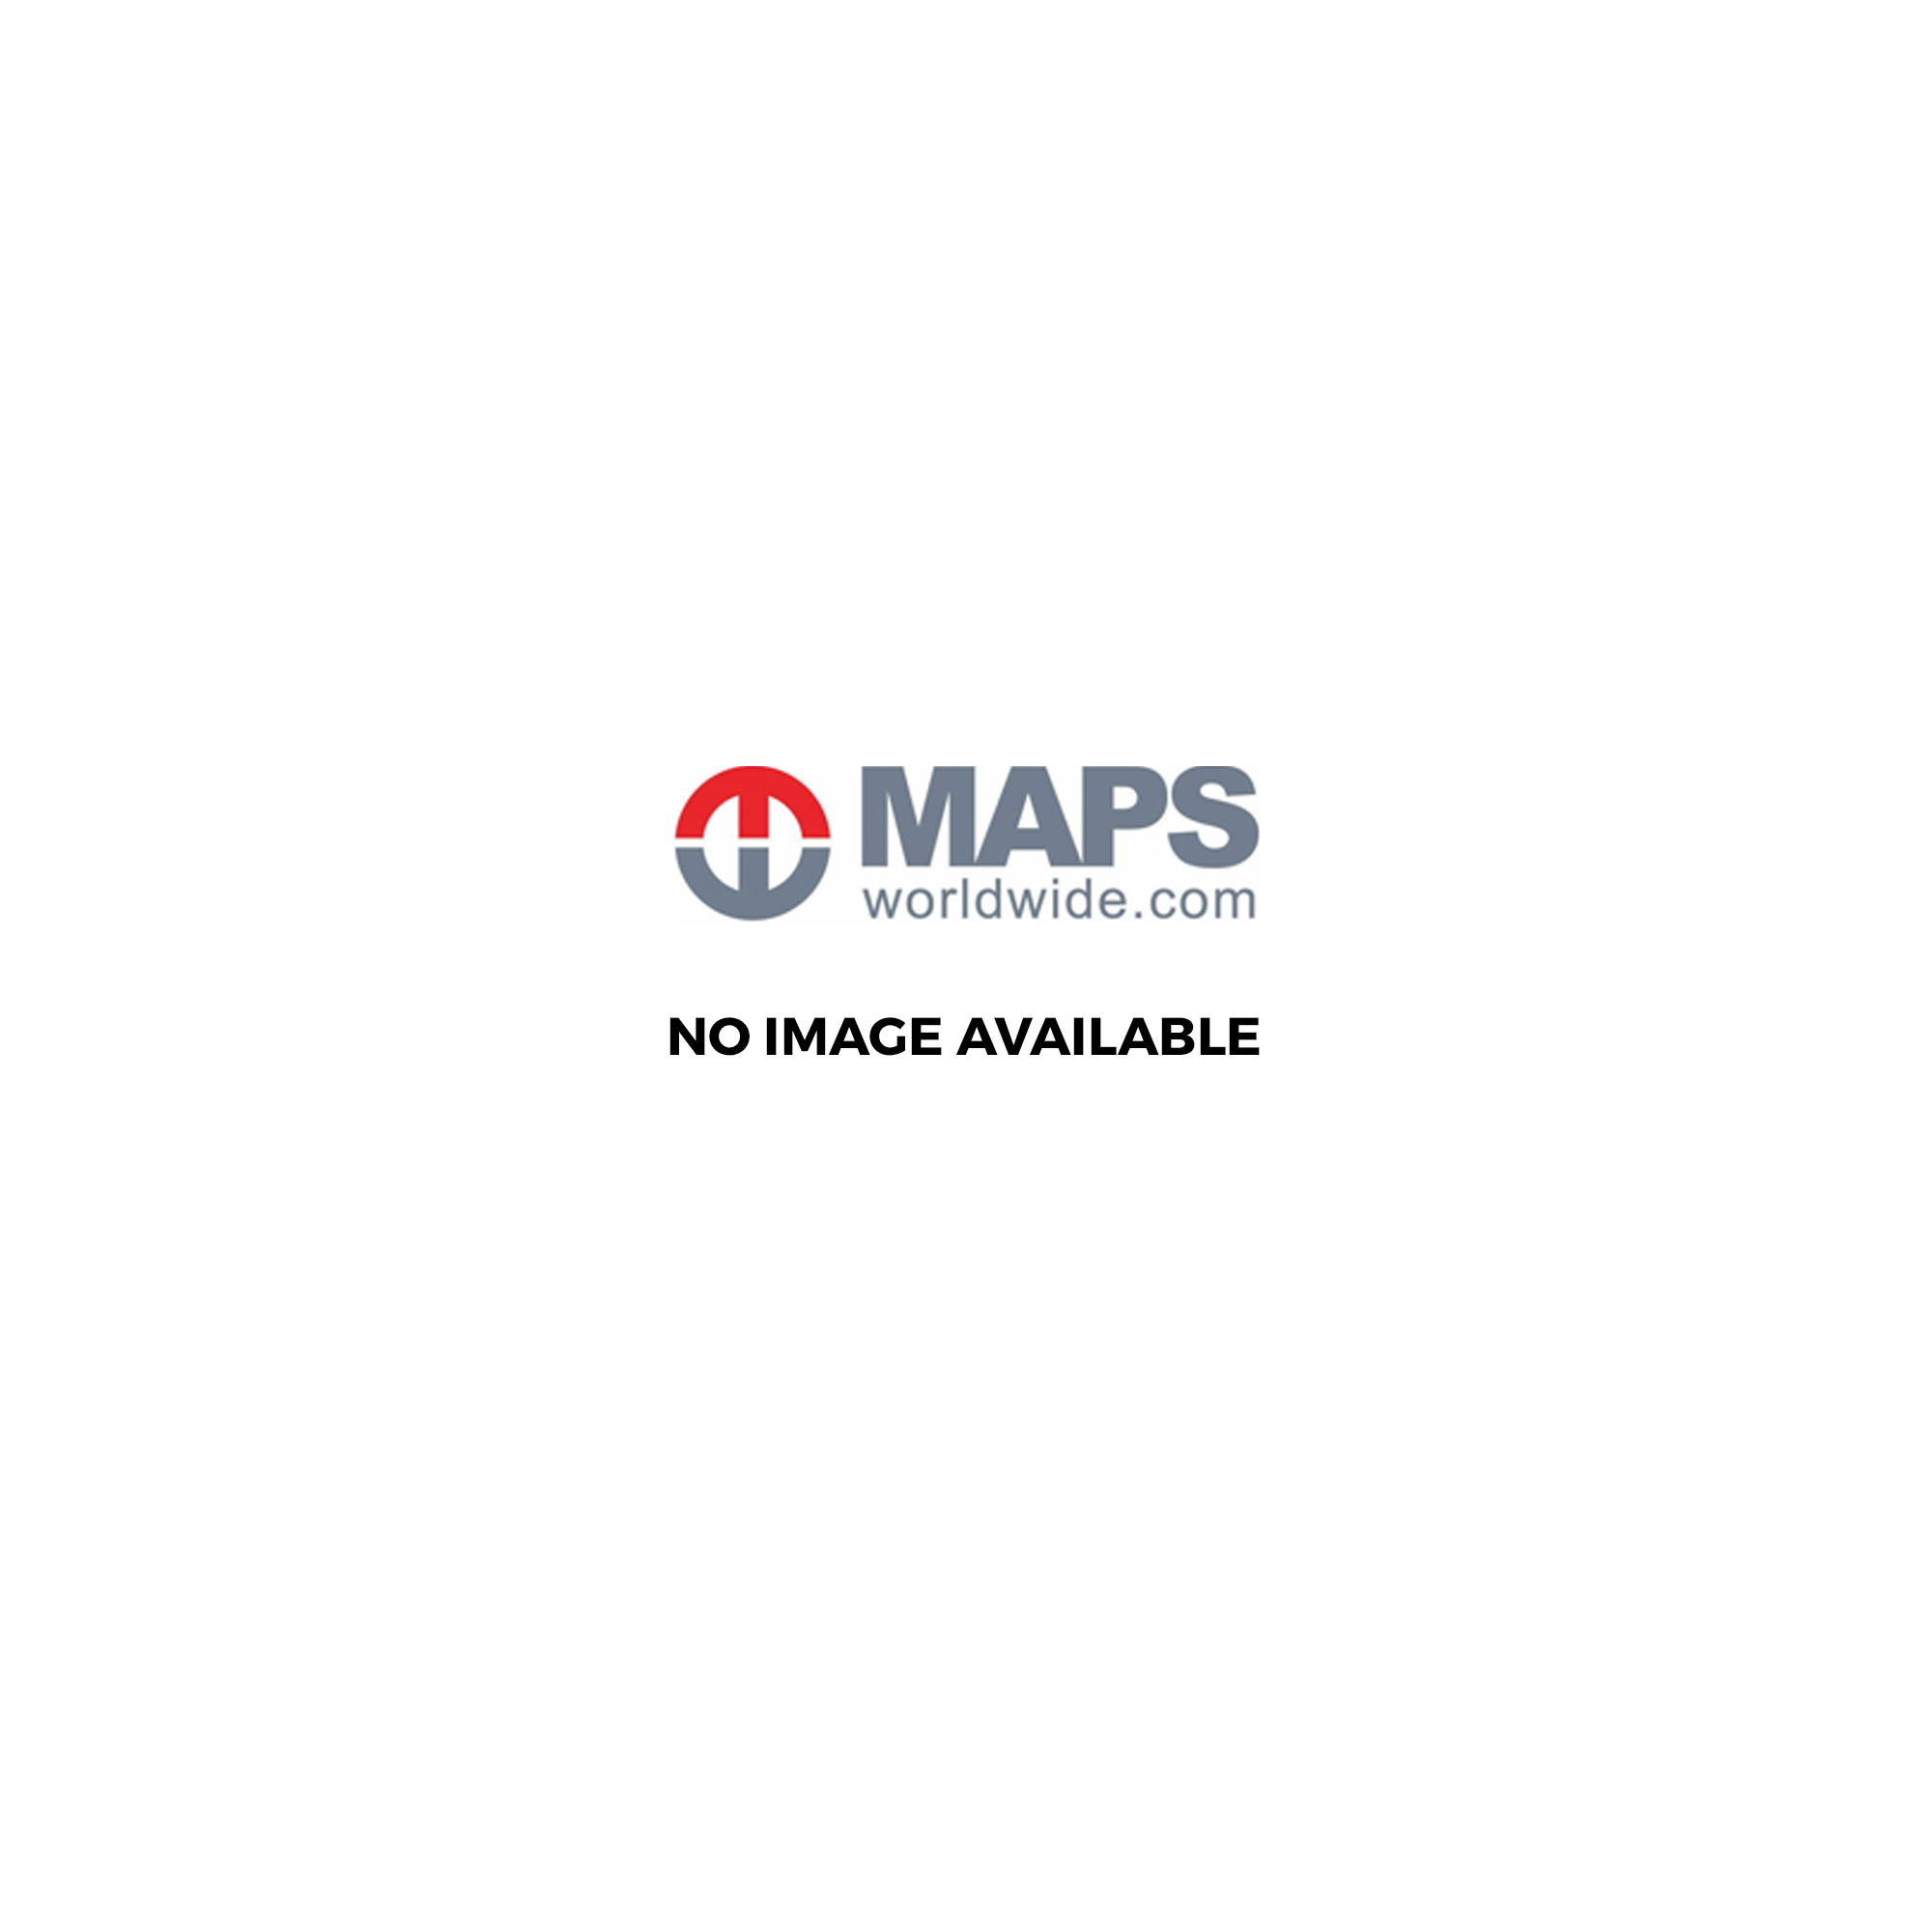 Magnetic Map Pins (Red) 13 mm - (6812-12)